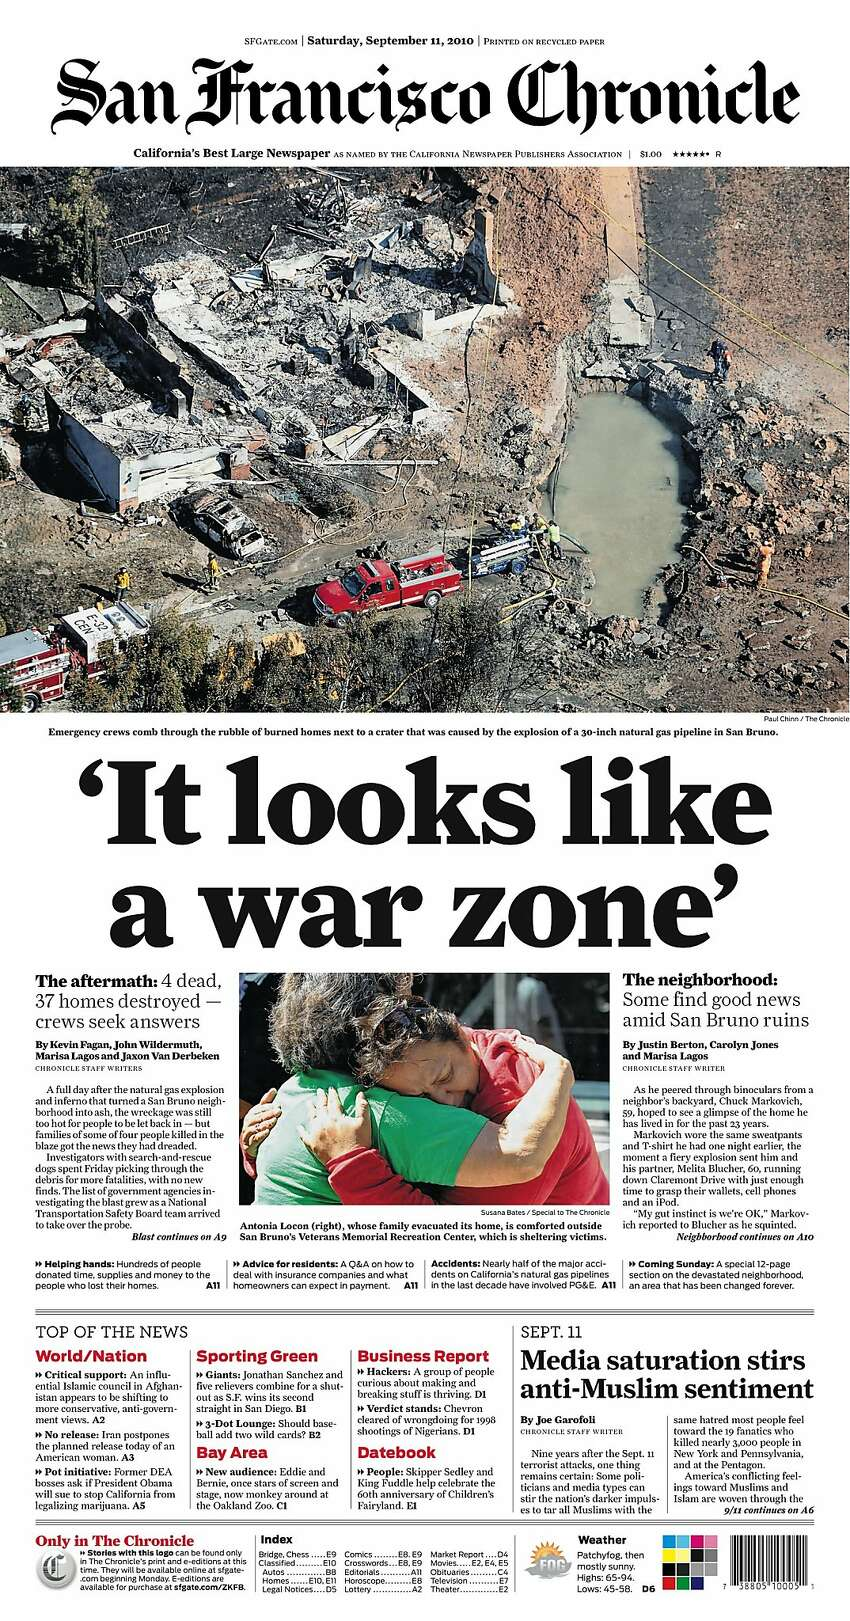 Historic Chronicle Front Page September 11, 2010 A PG&E pipeline explosion would devastate a San Bruno neighborhood